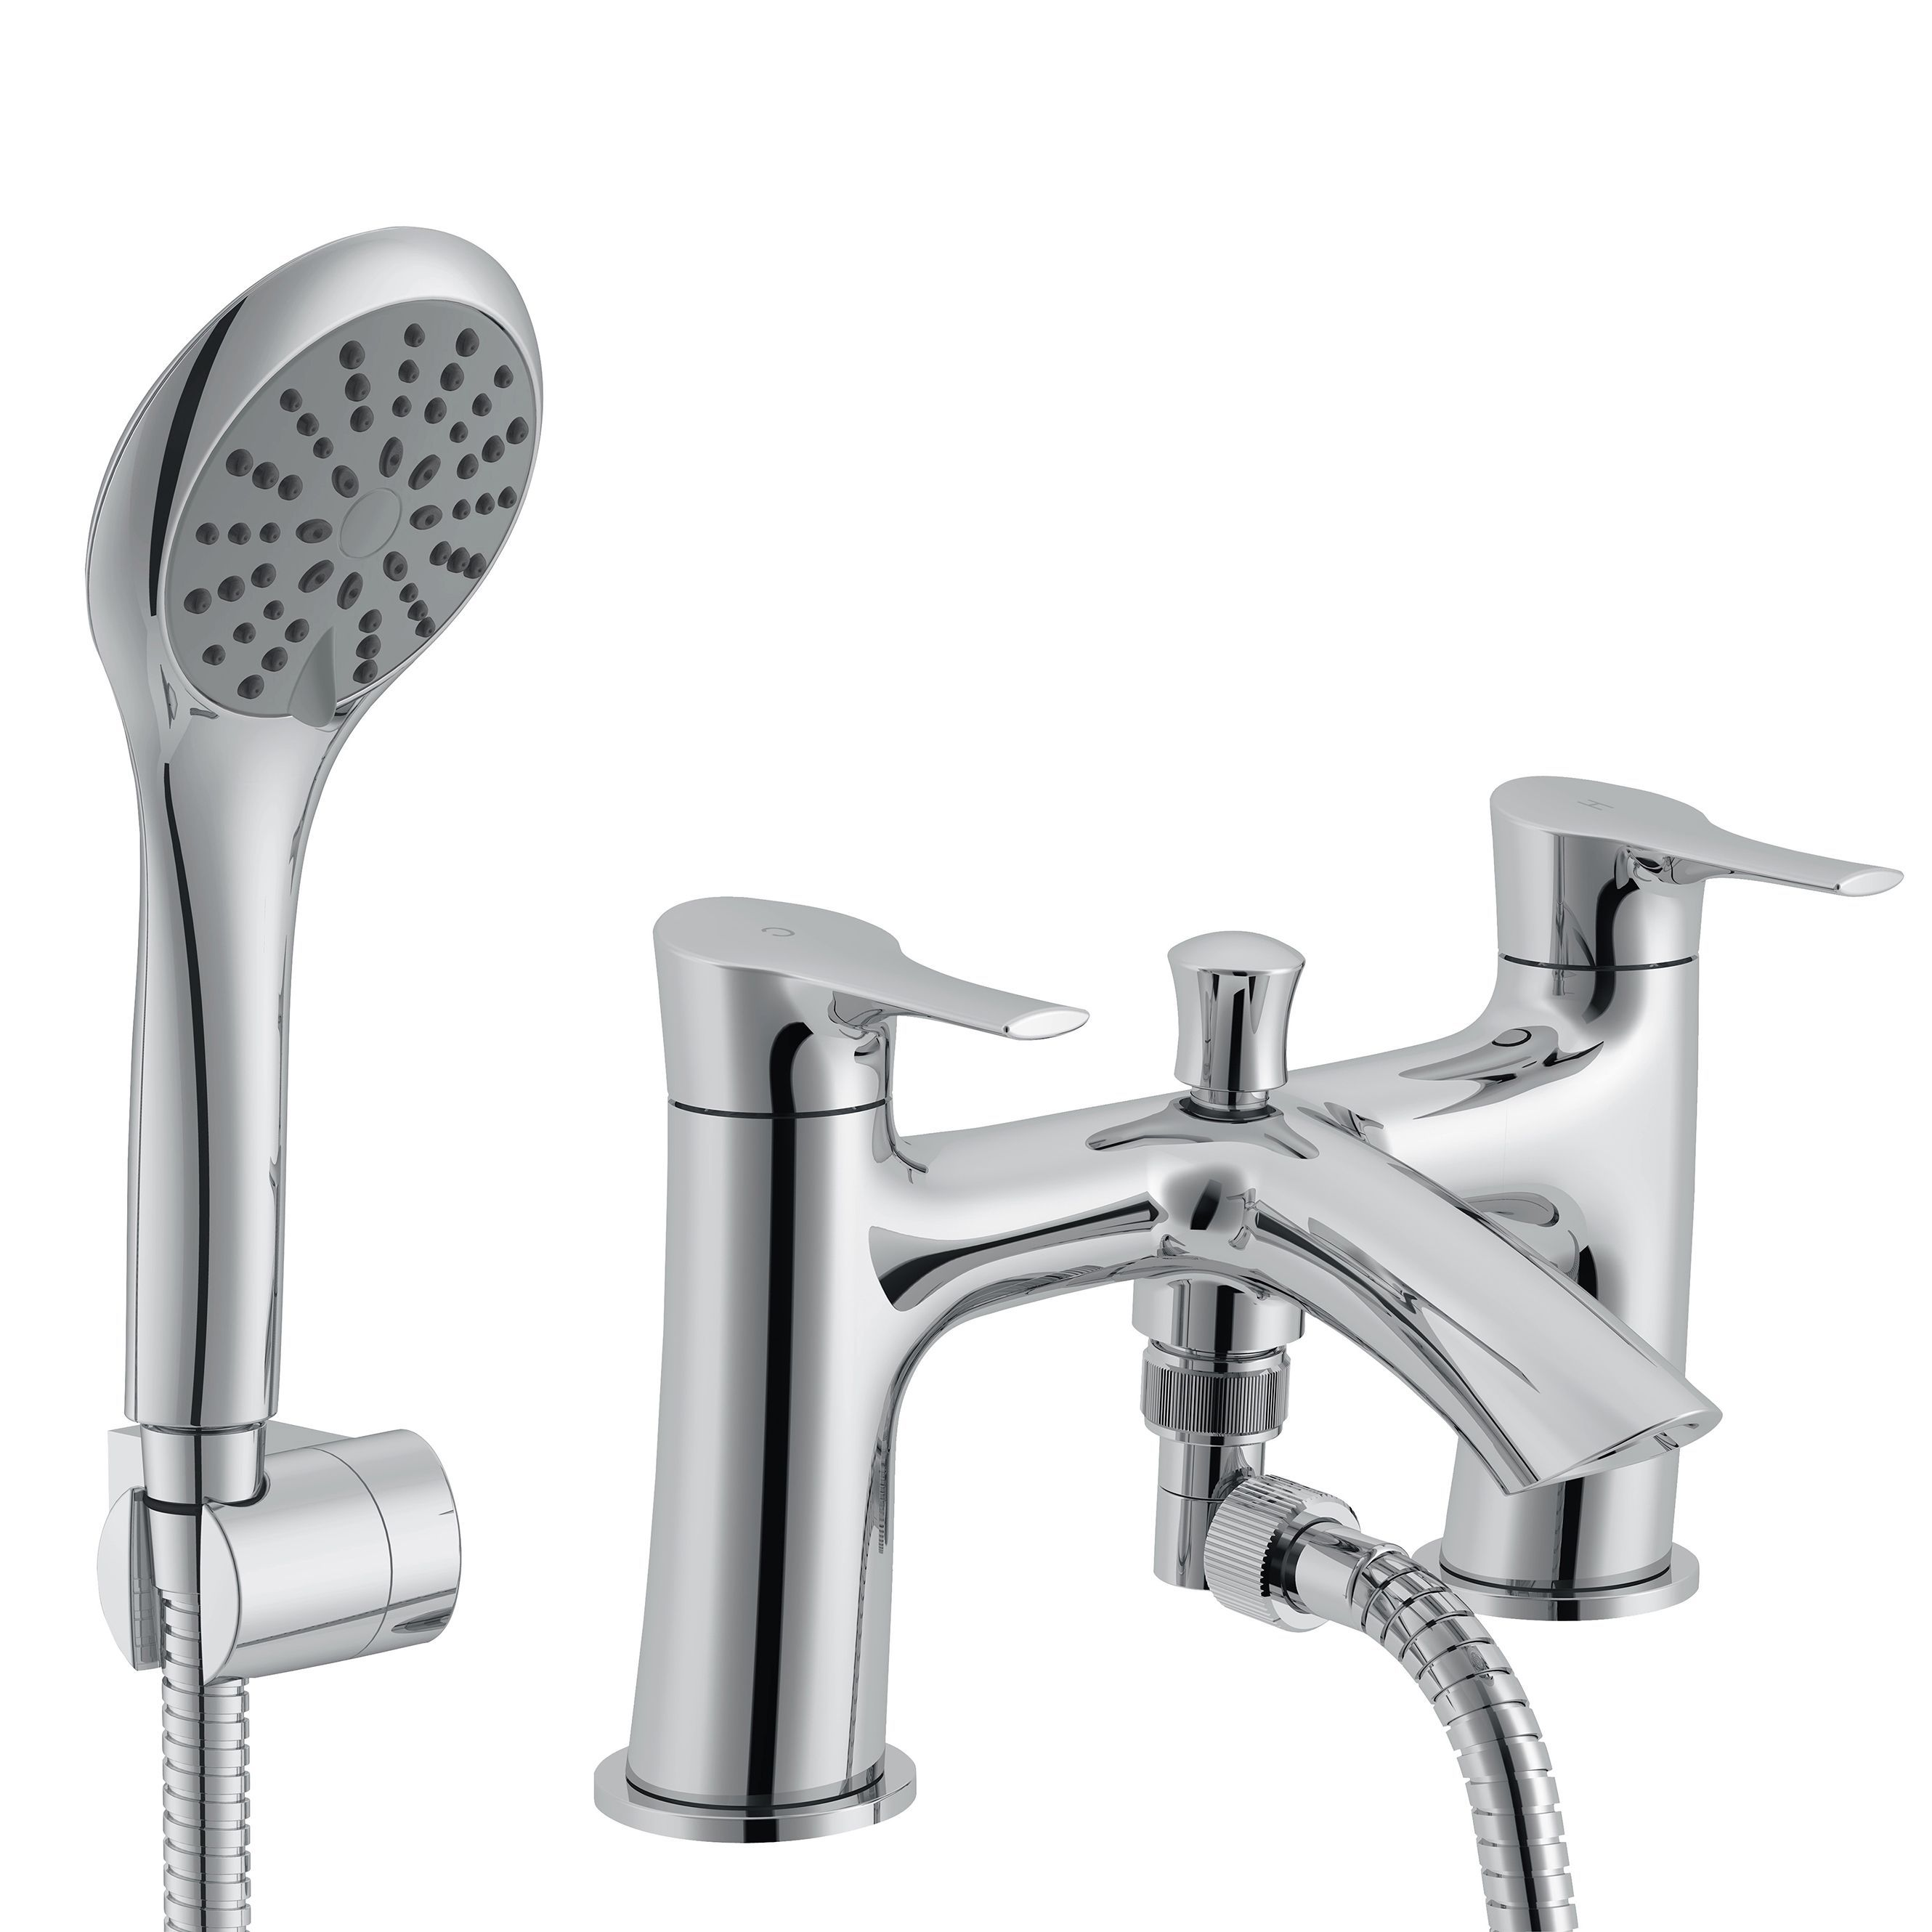 Cooke Lewis Oceanspray Chrome Bath Shower Mixer Tap